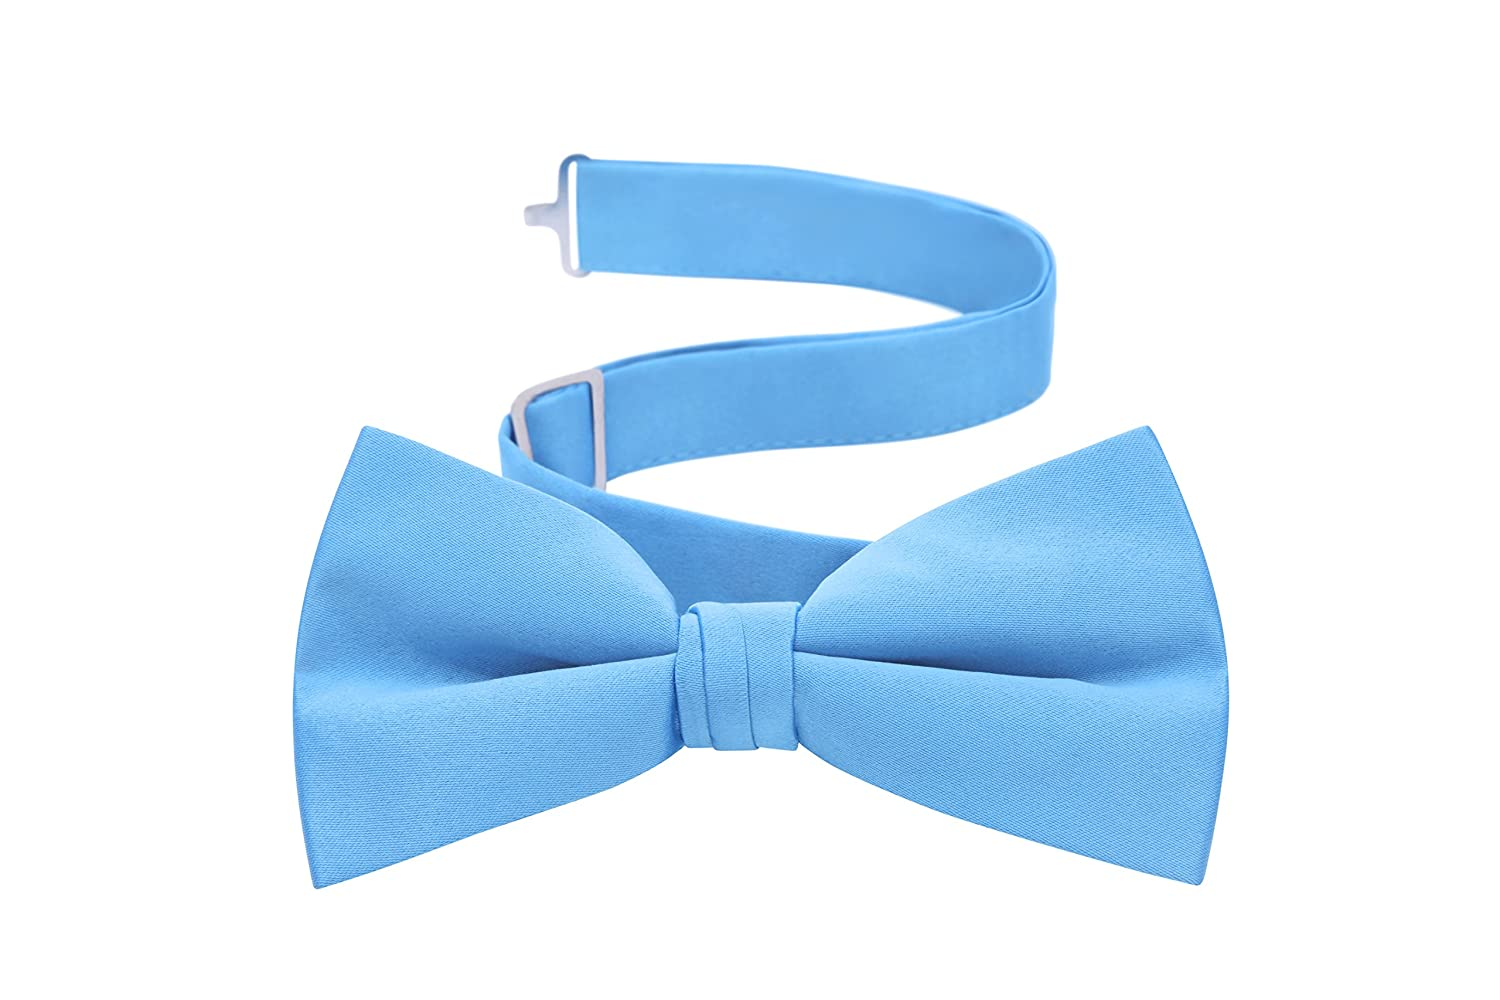 Men's Formal Tuxedo Bow Tie - Pre-tied with Adjustable Strap